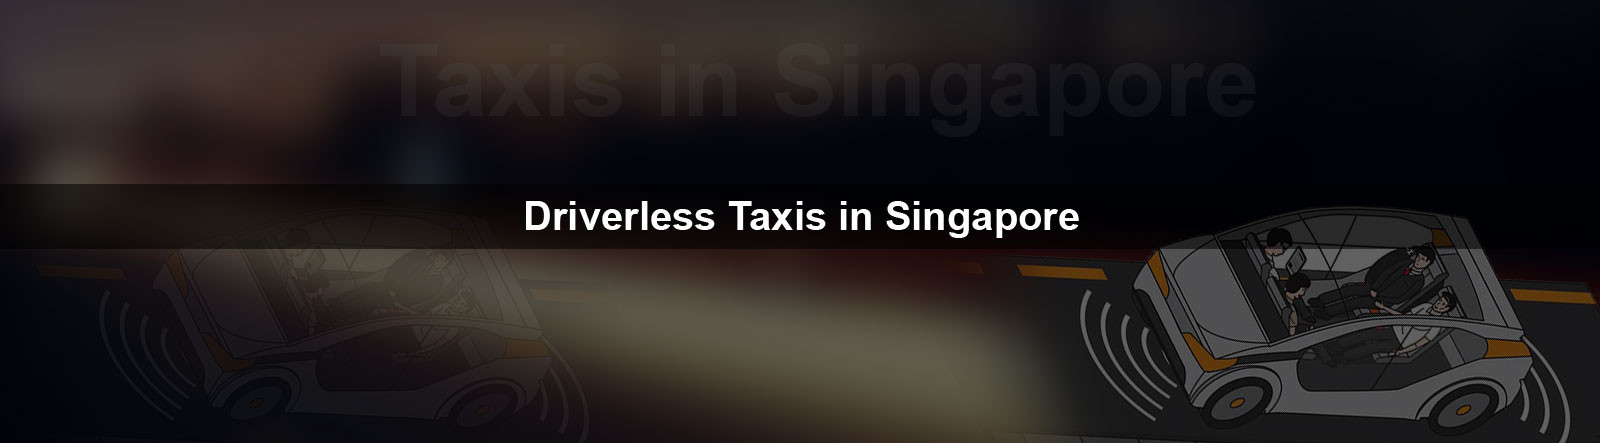 Driver less Taxis Make Their Debut in Singapore